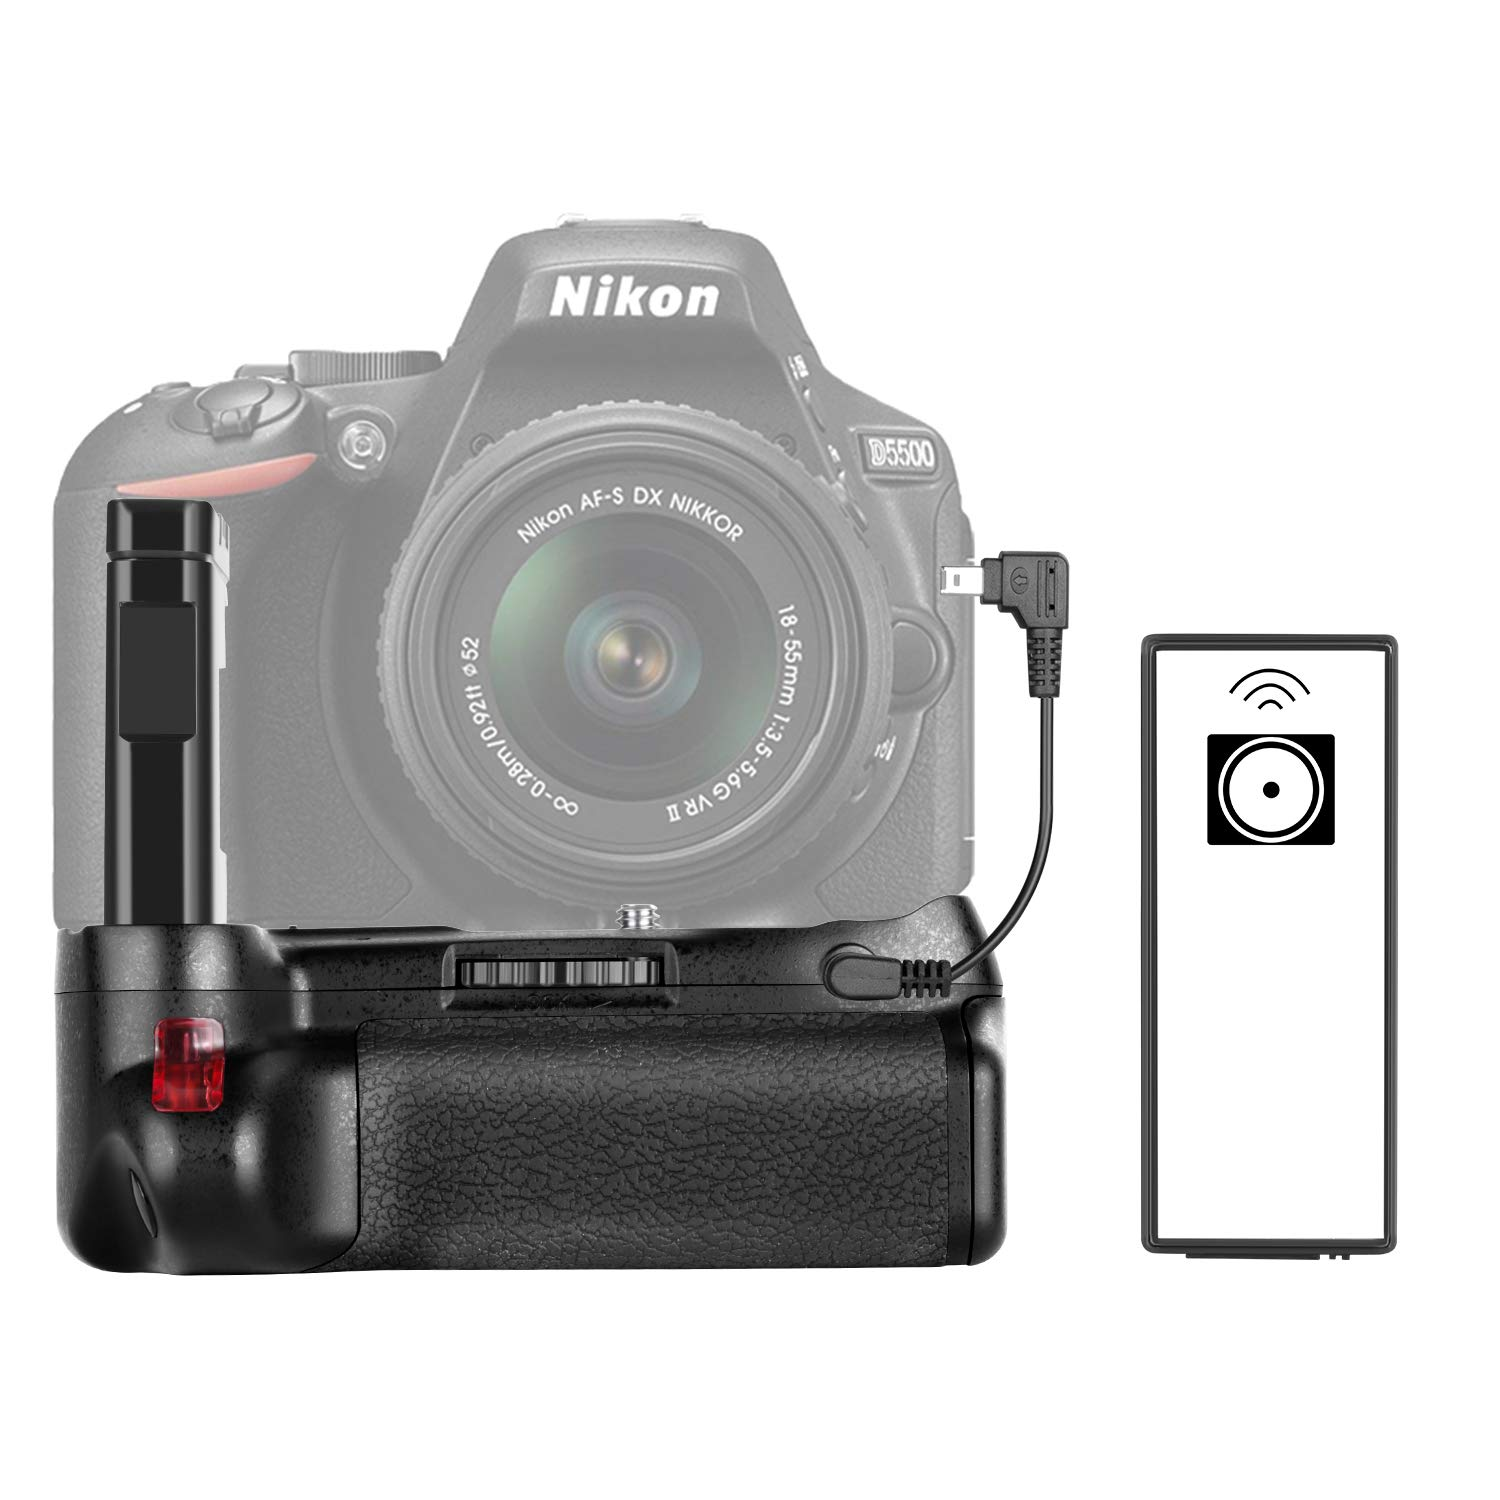 Neewer Professional Vertical Battery Grip Work with EN-EL14A Rechargeable Battery for Nikon D5600 and D5500 DSLR Camera (Battery Not Included) by Neewer